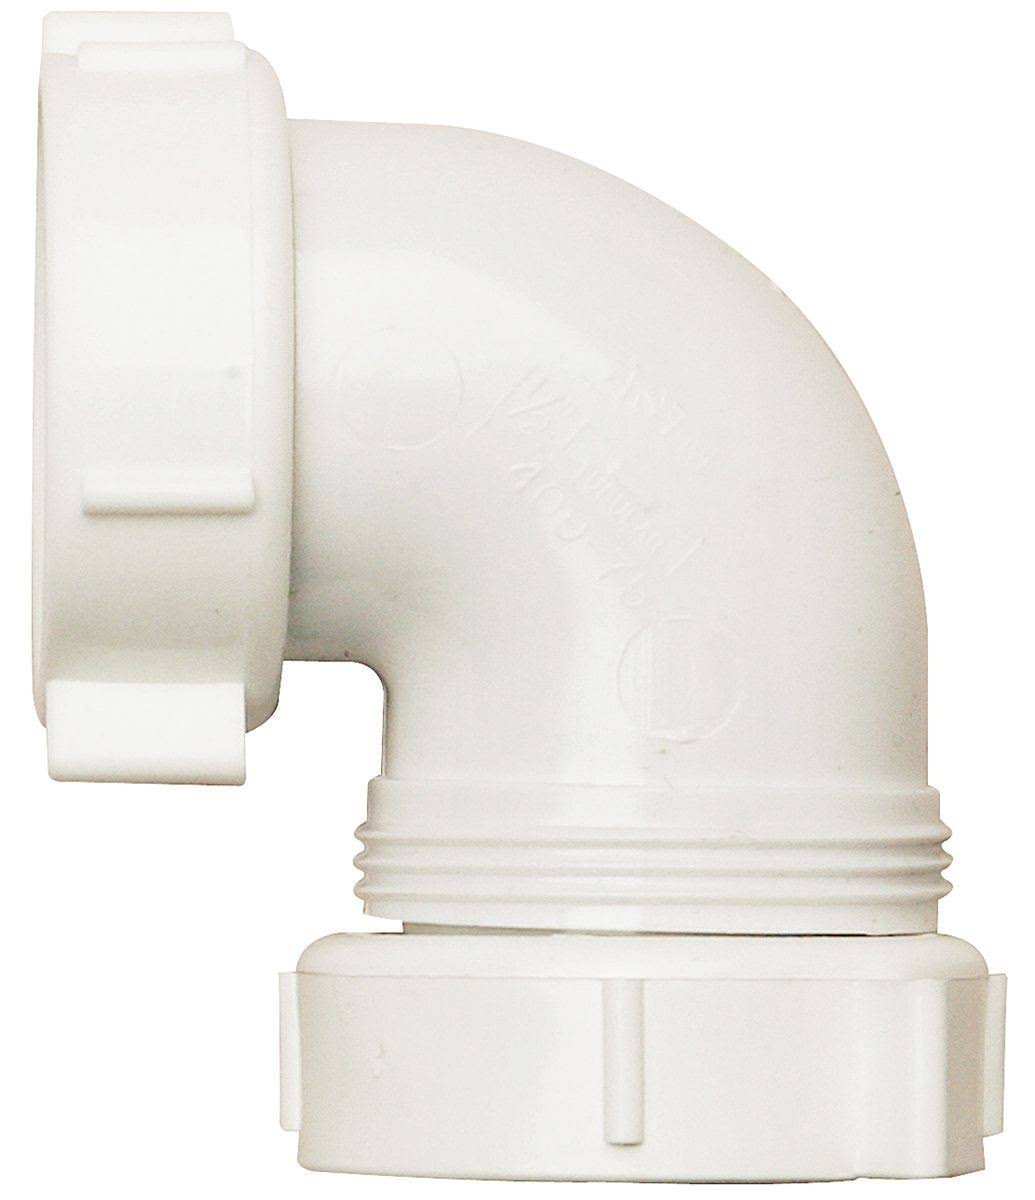 Plumb Pak PP66-10W Drain Pipe Elbow - 90 deg, 1-1/2 in